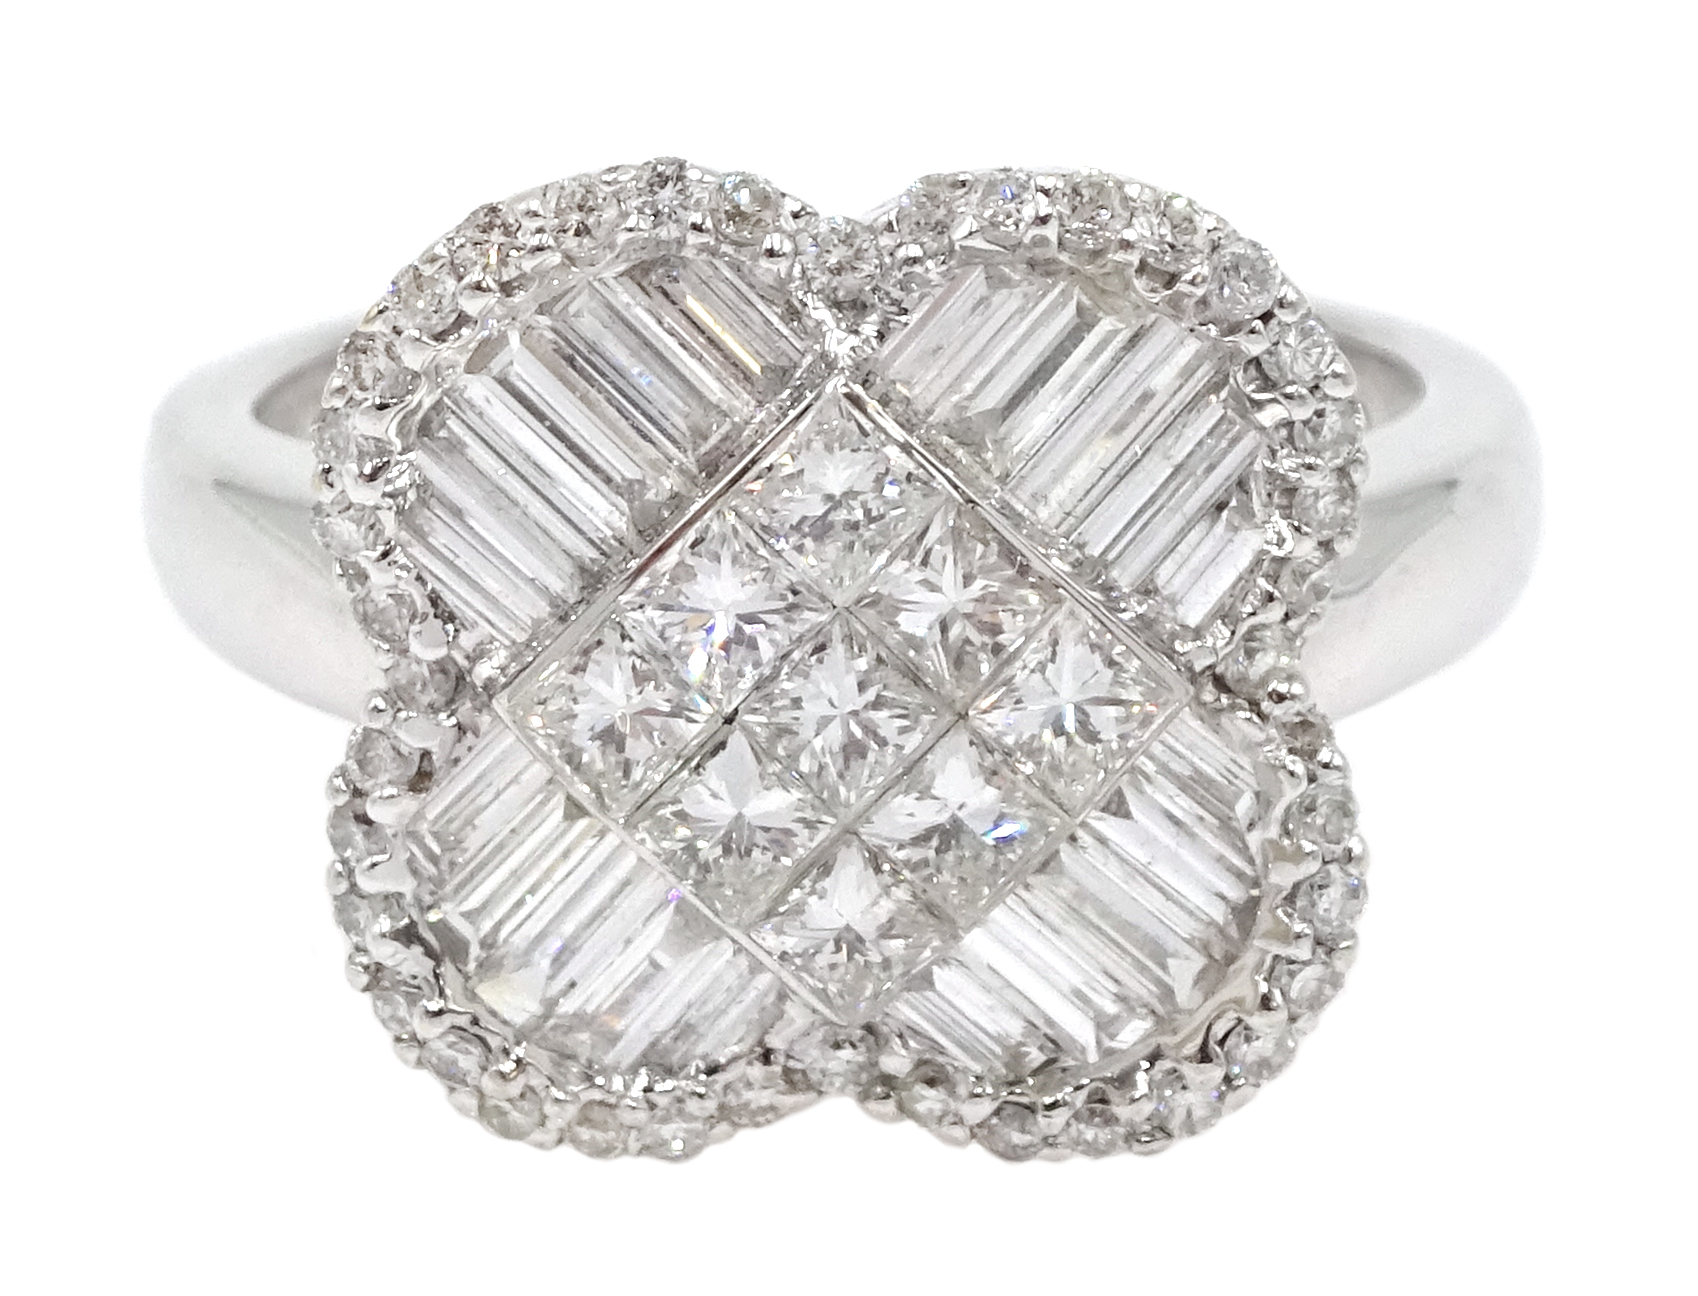 18ct white gold and diamond cluster ring, diamond total weight approx 1.25 carat, free UK mainland